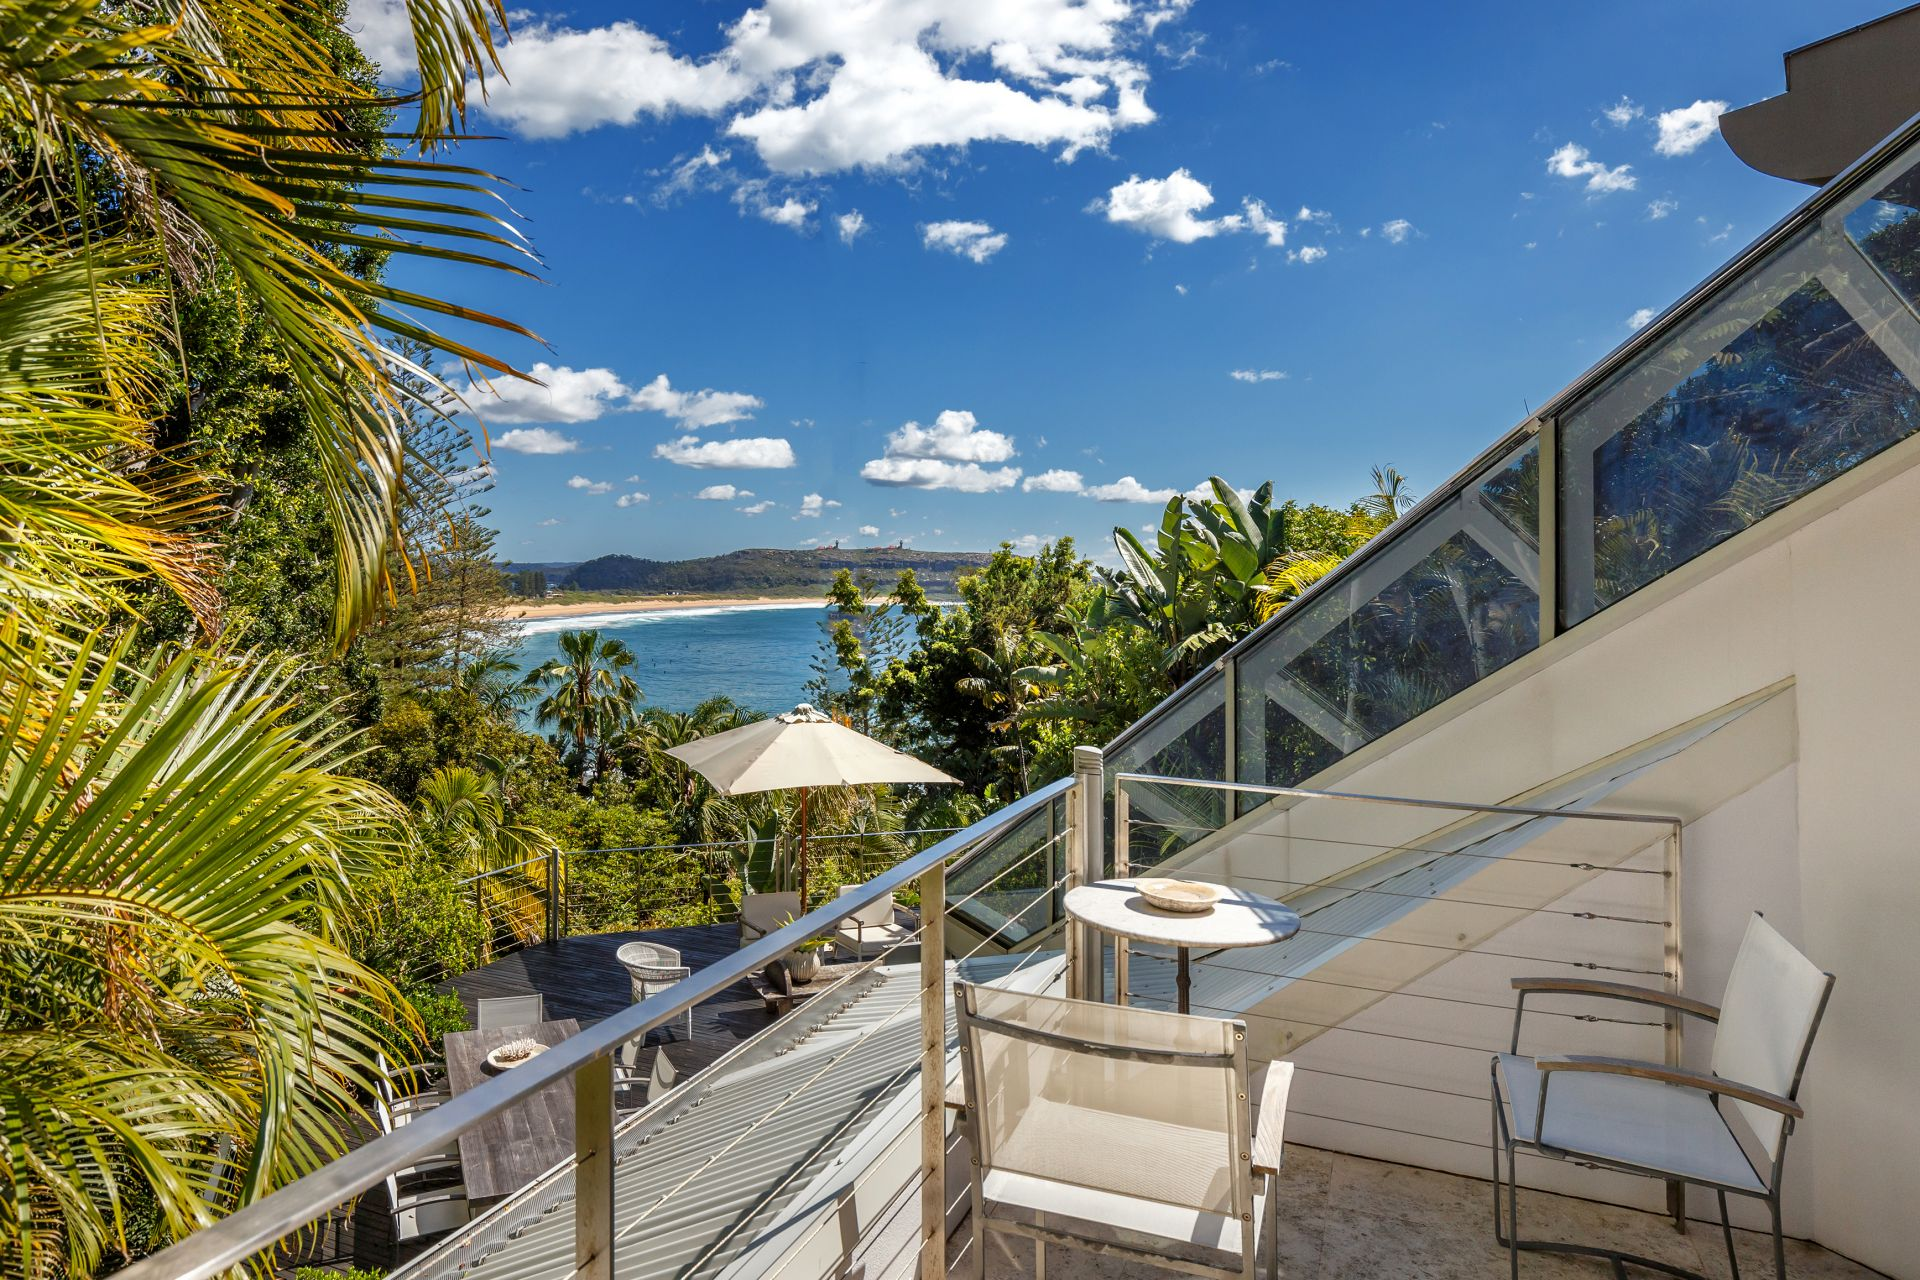 Additional photo for property listing at All offers invited - Breathtaking due-north views 28 Florida Road Palm Beach, New South Wales,2108 Australia